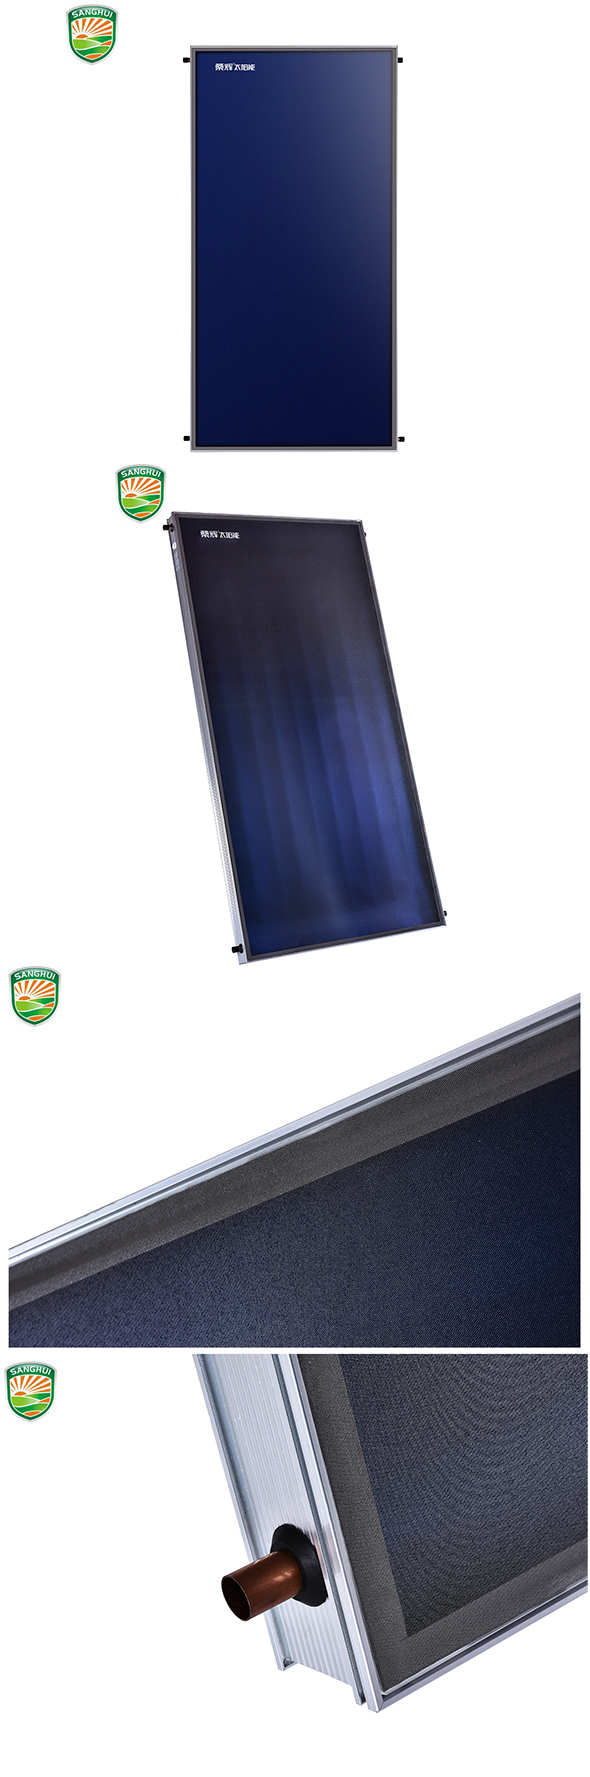 SHe-BE New Design Stand Flat Plate Solar Power System For Factory,Hotel,Hospictal,School Hot Water